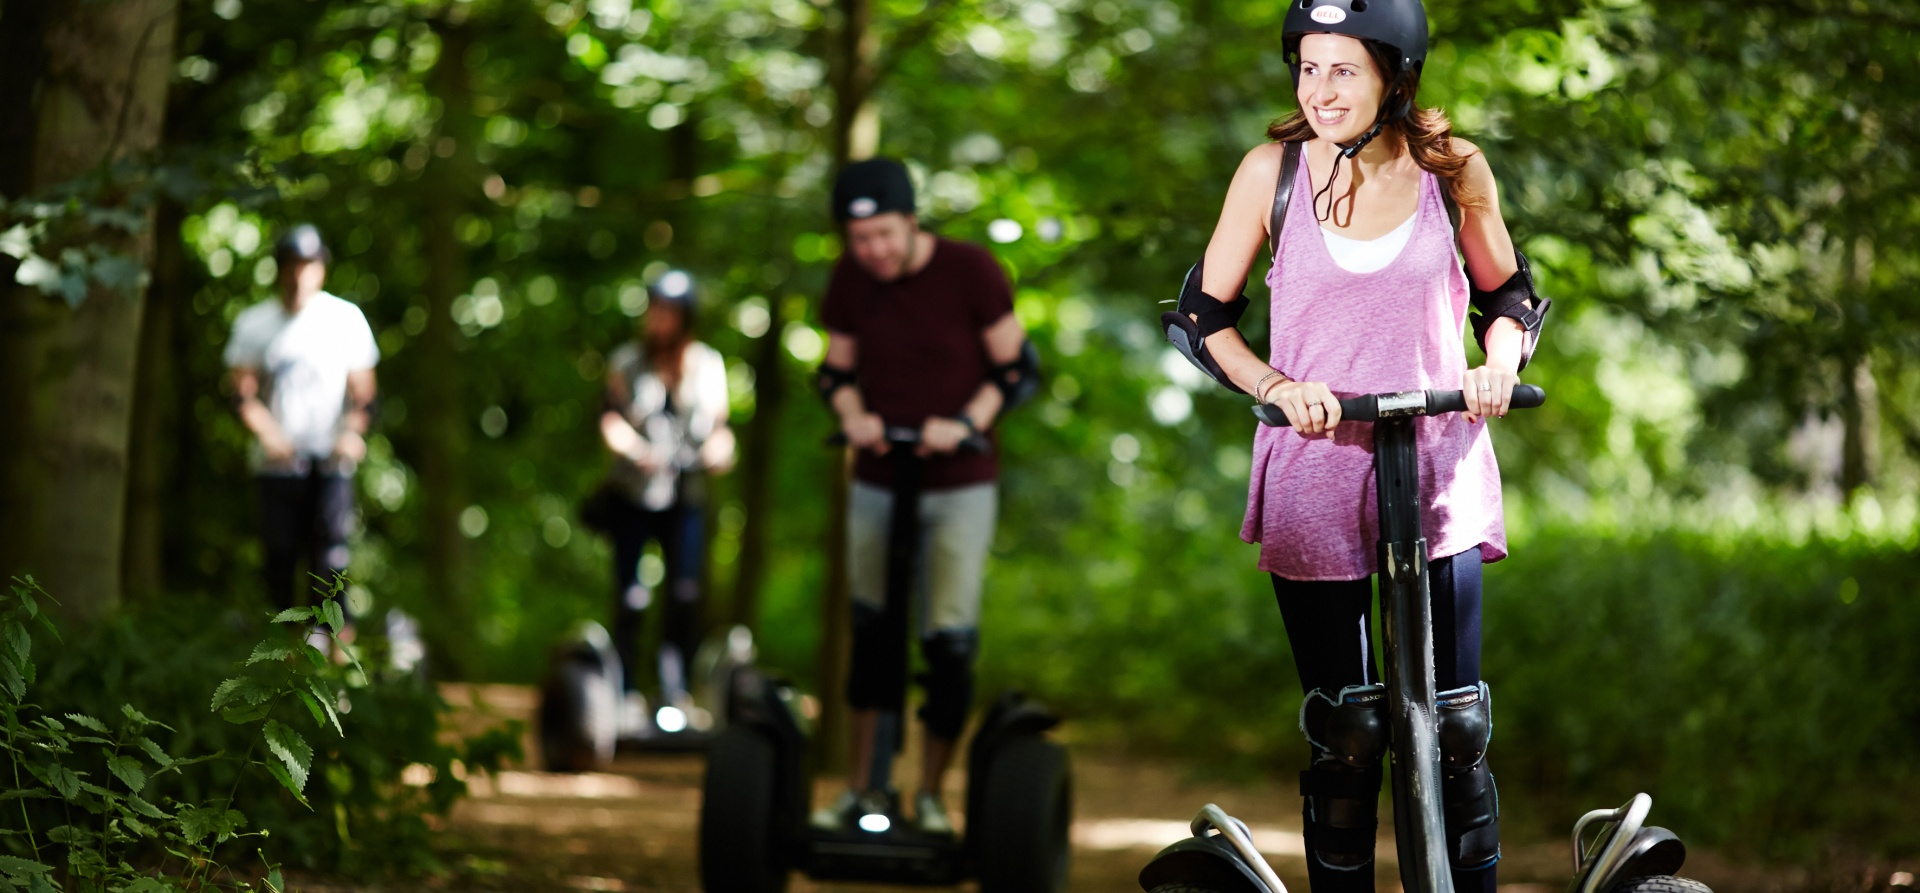 Segway Adventure For 2 Special Offer